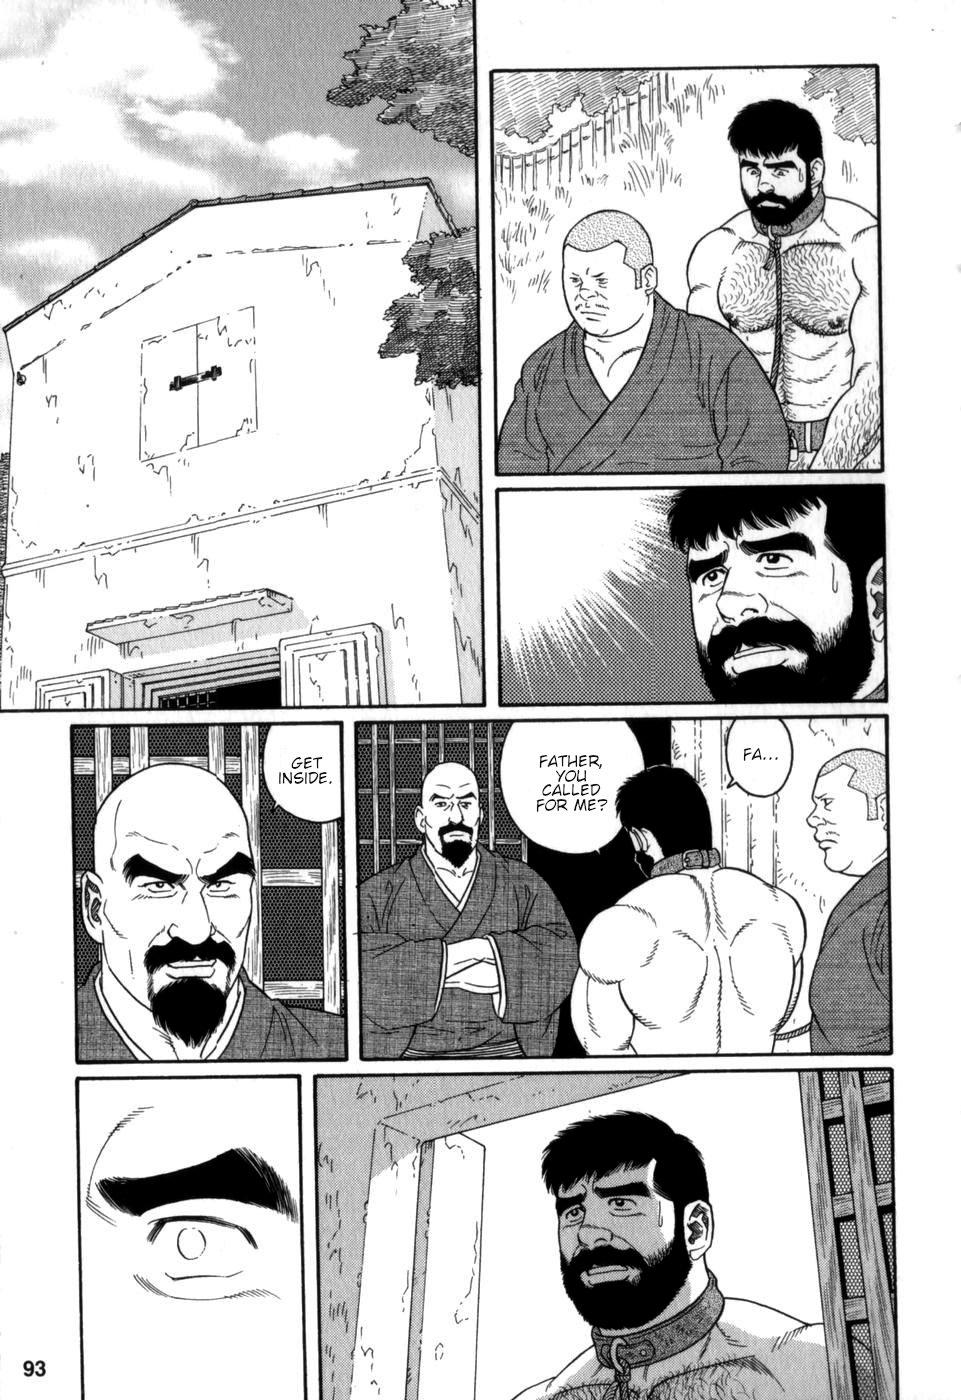 Gedou no Ie Chuukan | House of Brutes Vol. 2 Ch. 3 22